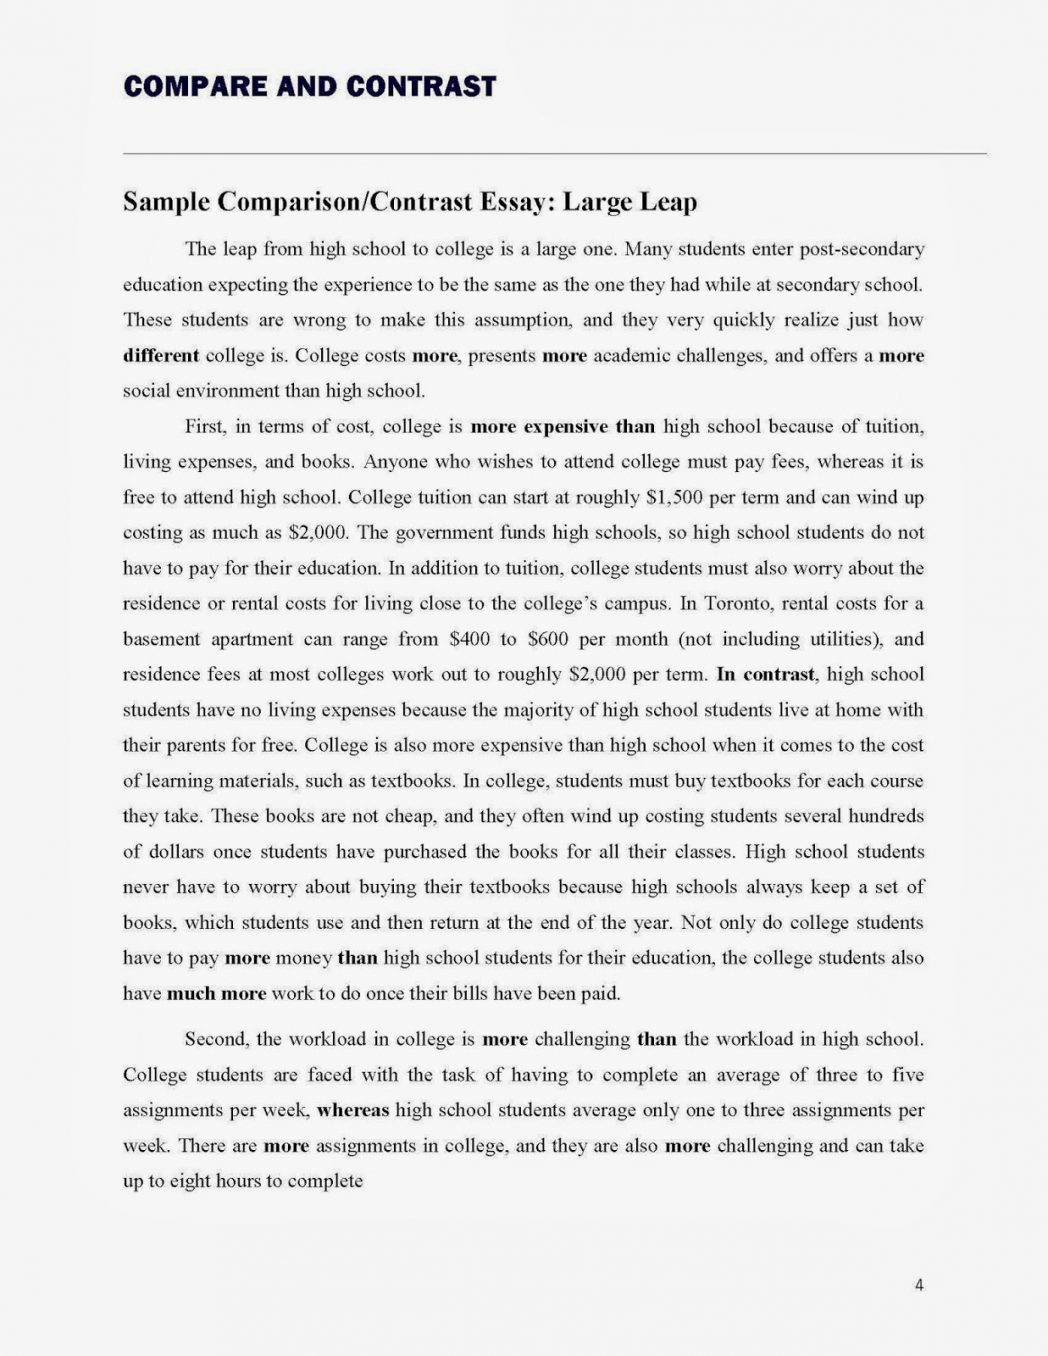 007 Word Essay The Giver Topics Ple Dns Phrases Totart Persu Ways Oftarting Persuasive How Conclusion Words With Quote Hooks Examplesentences For Introduction 1048x1356 Example Formidable To Start A Compare And Contrast Write Examples Comparison Thesis Middle School Full